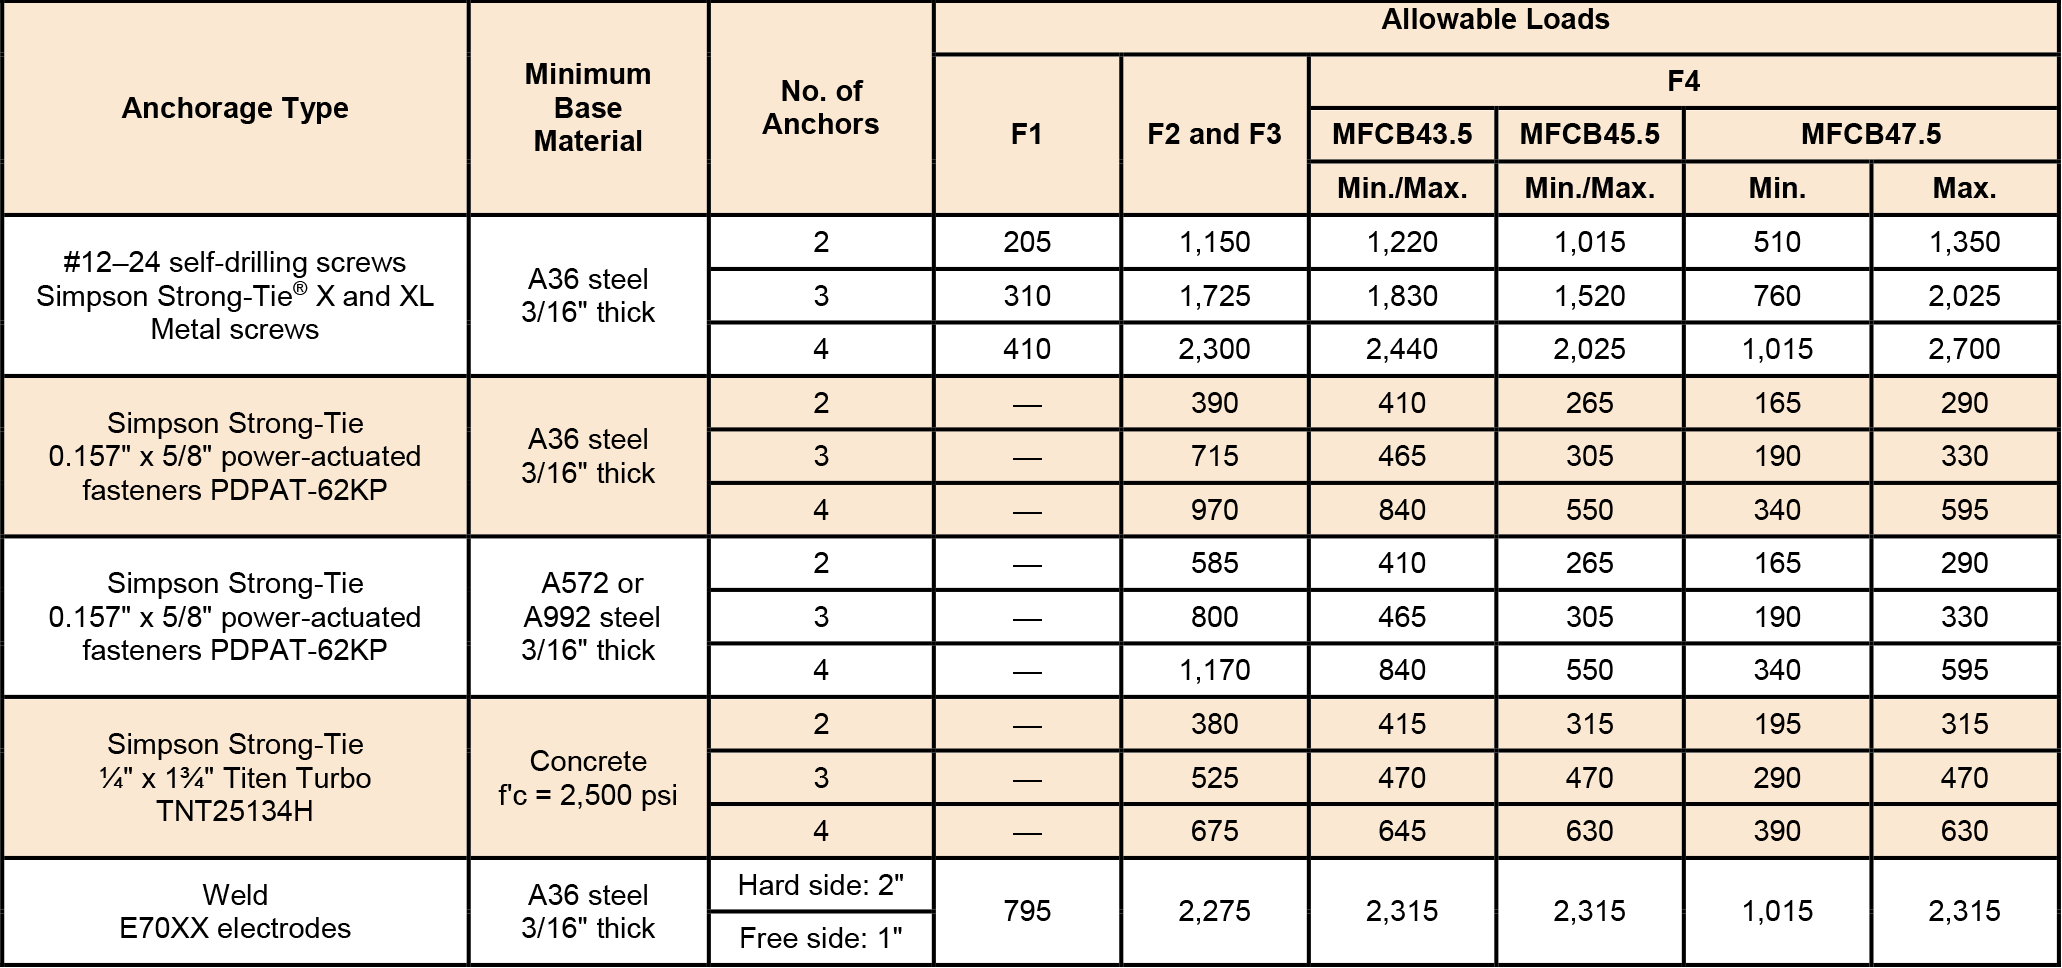 Table 2 — MFCB Allowable Anchorage Loads (lb.)